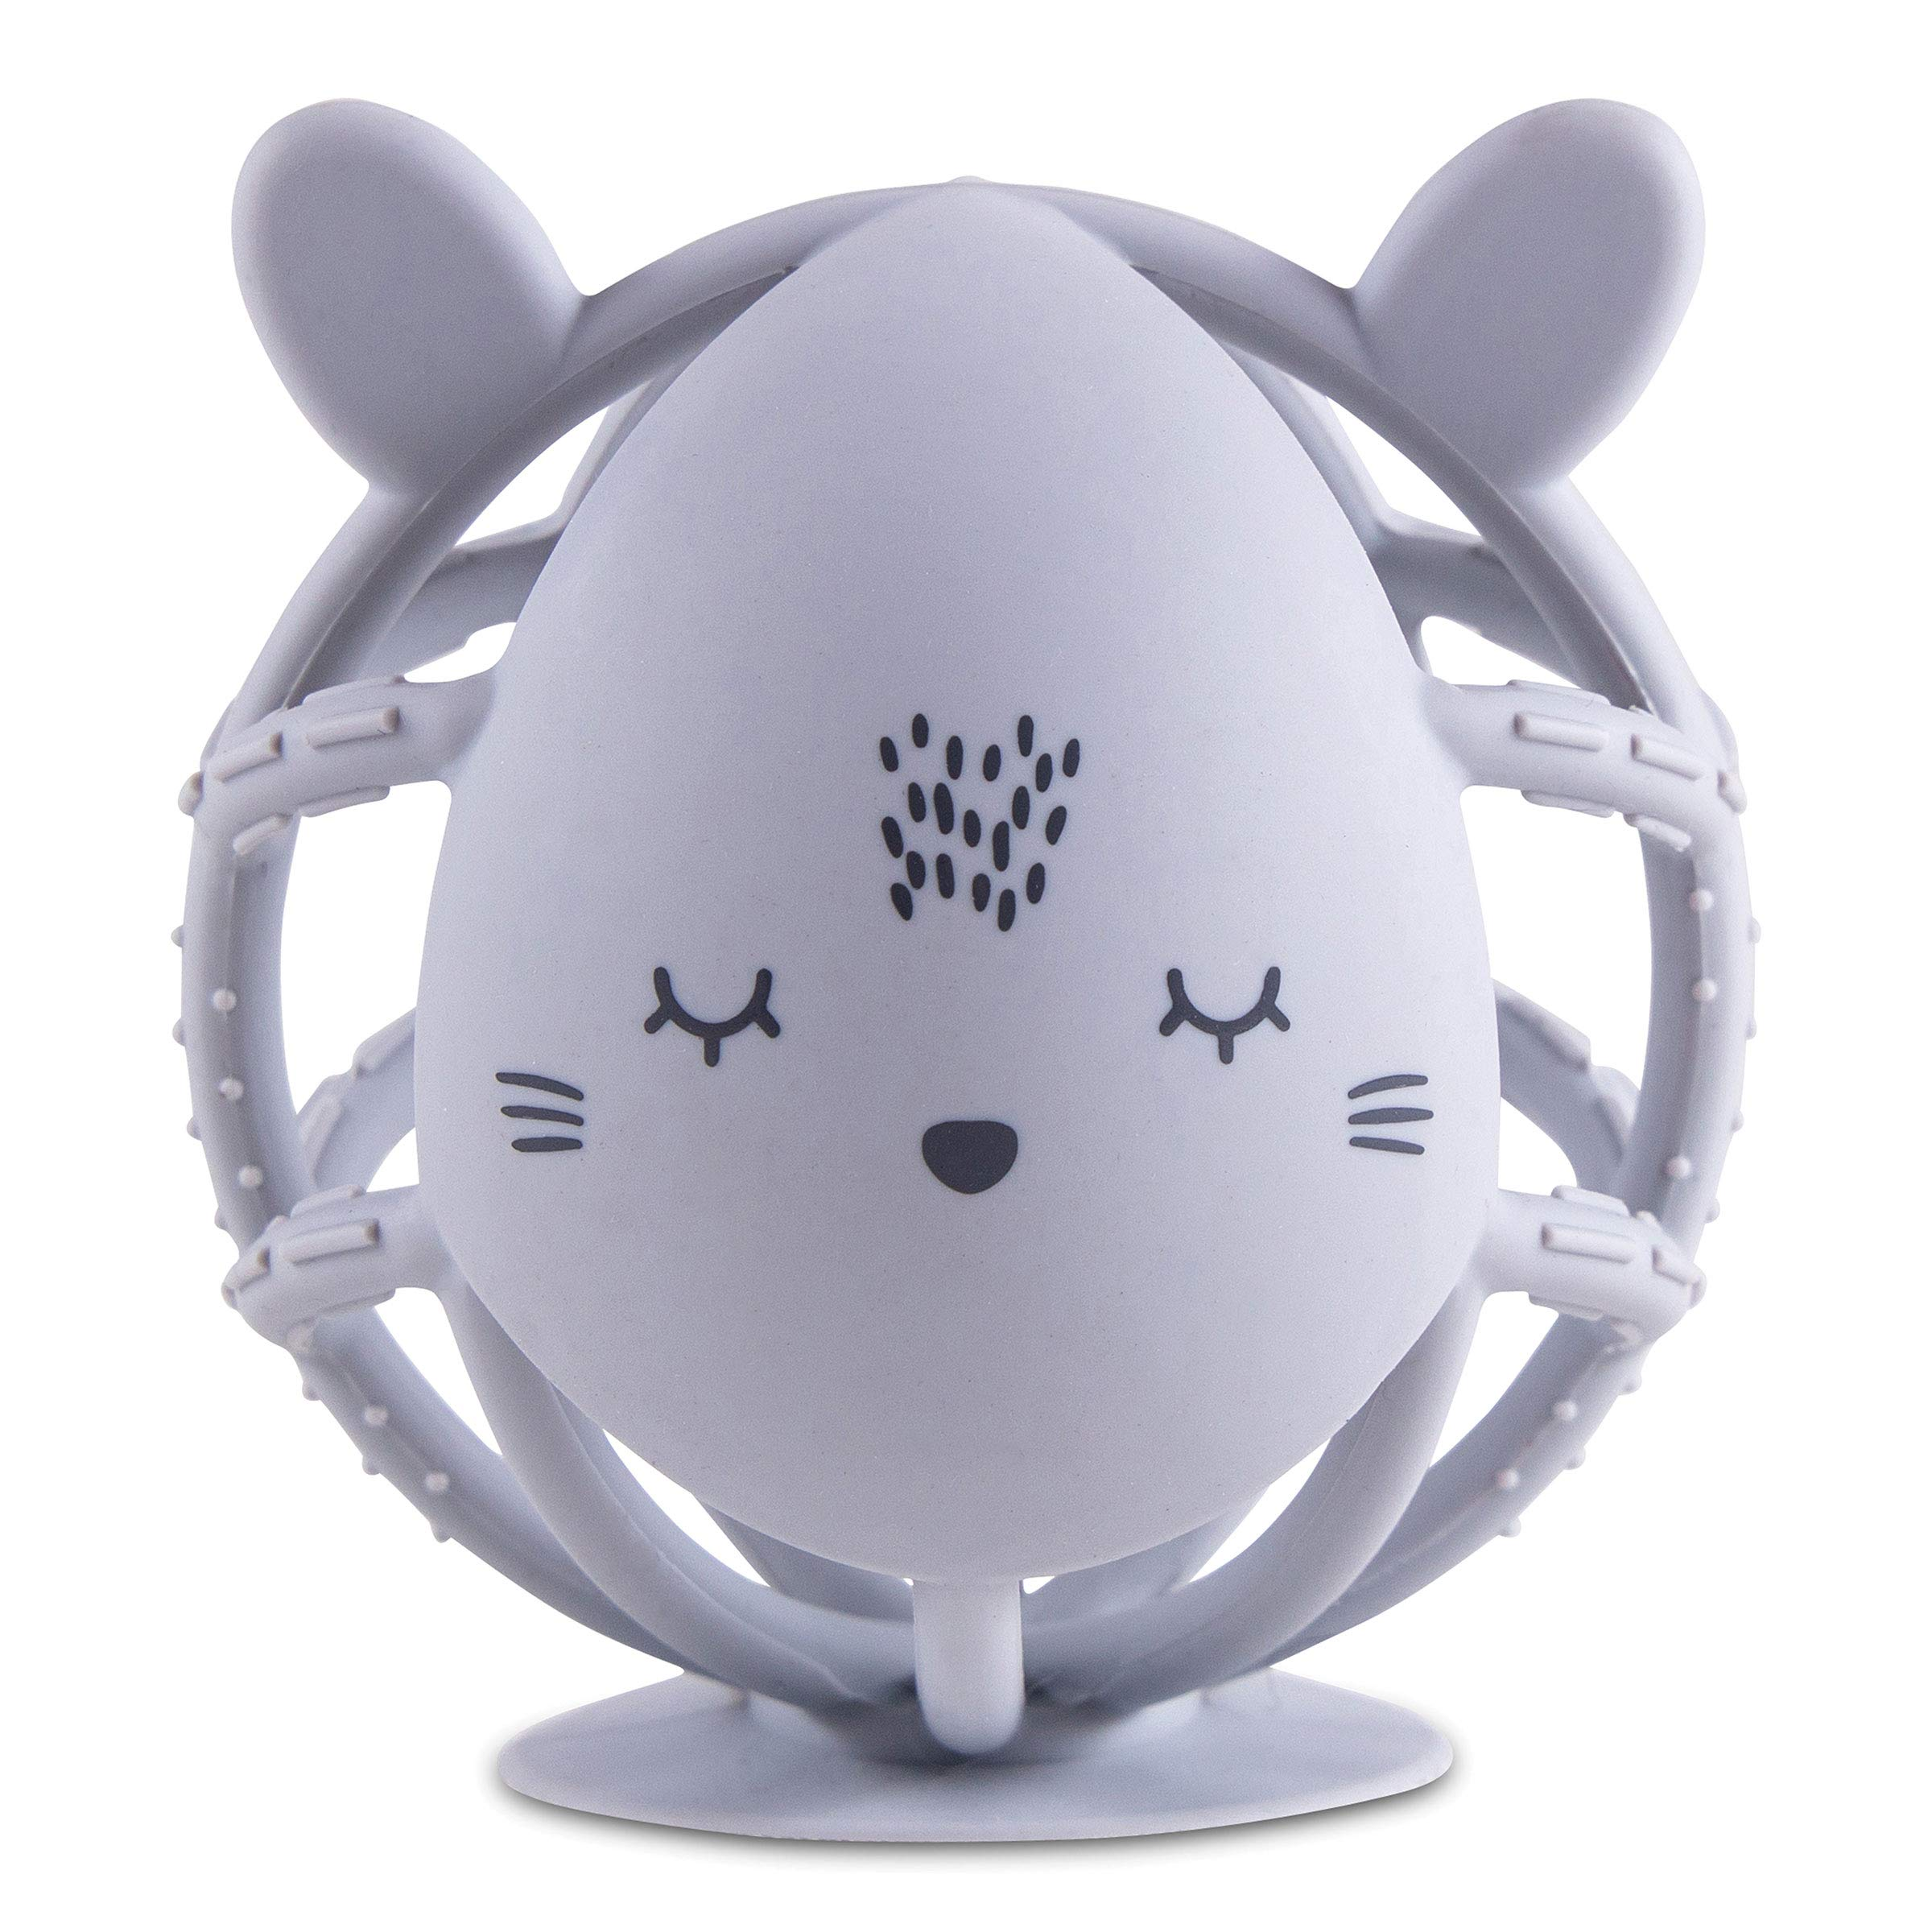 Tiny Twinkle Silicone Teether Toy - Grey Bunny - BPA Free Multi Textured, Suction Base teether Ball for Baby, Infants, Toddlers - Soothes Gums, Easy to Grasp, Safe to chew for Newborn +